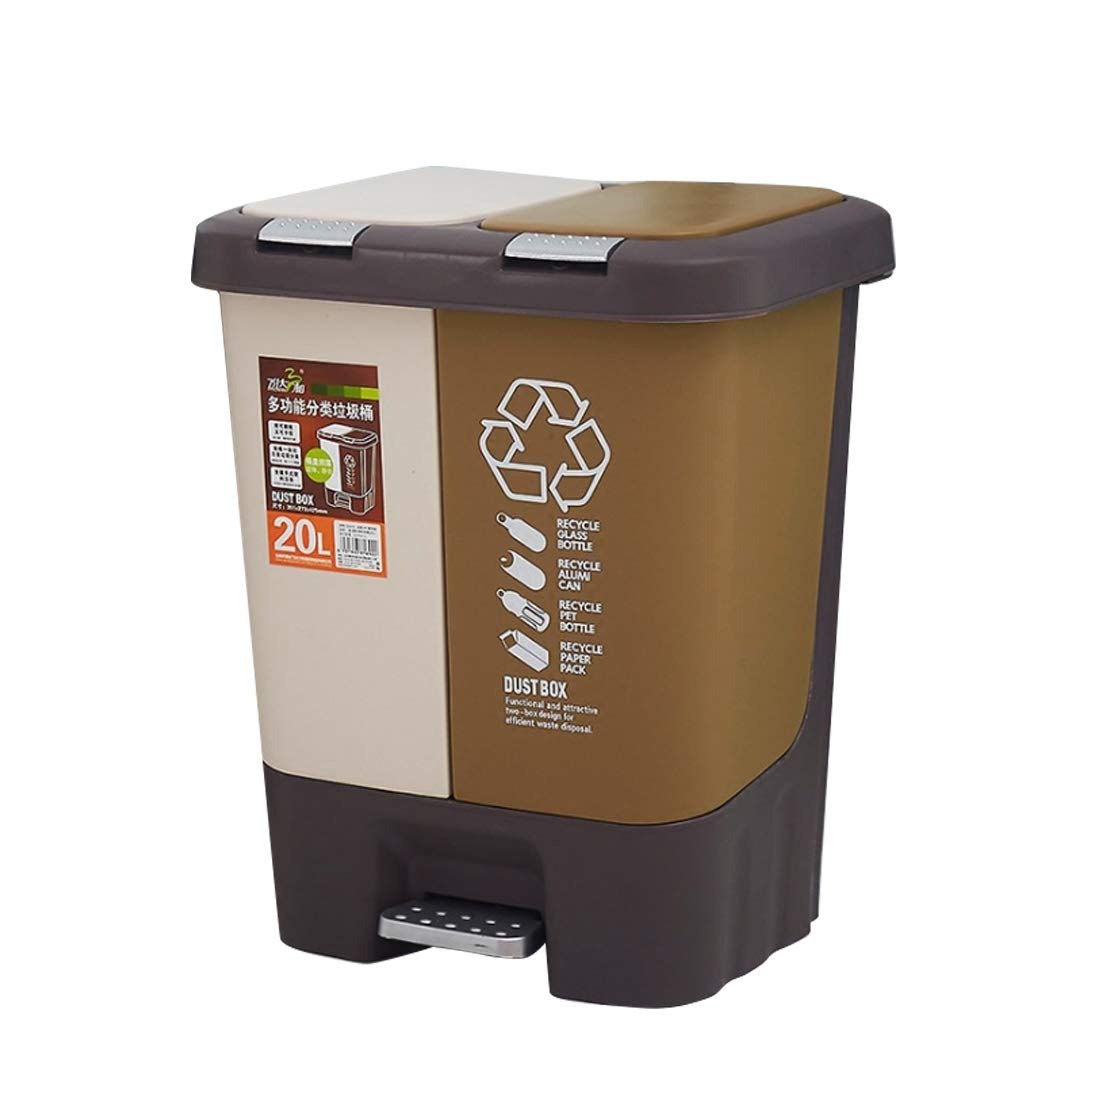 Haoun Classified Trash can,20 Liter/ 5.28 Gallon Double-Layer Garbage Can with Lid Foot Pedal Waste Bin Push Plastic Trash Can for Kitchen Office